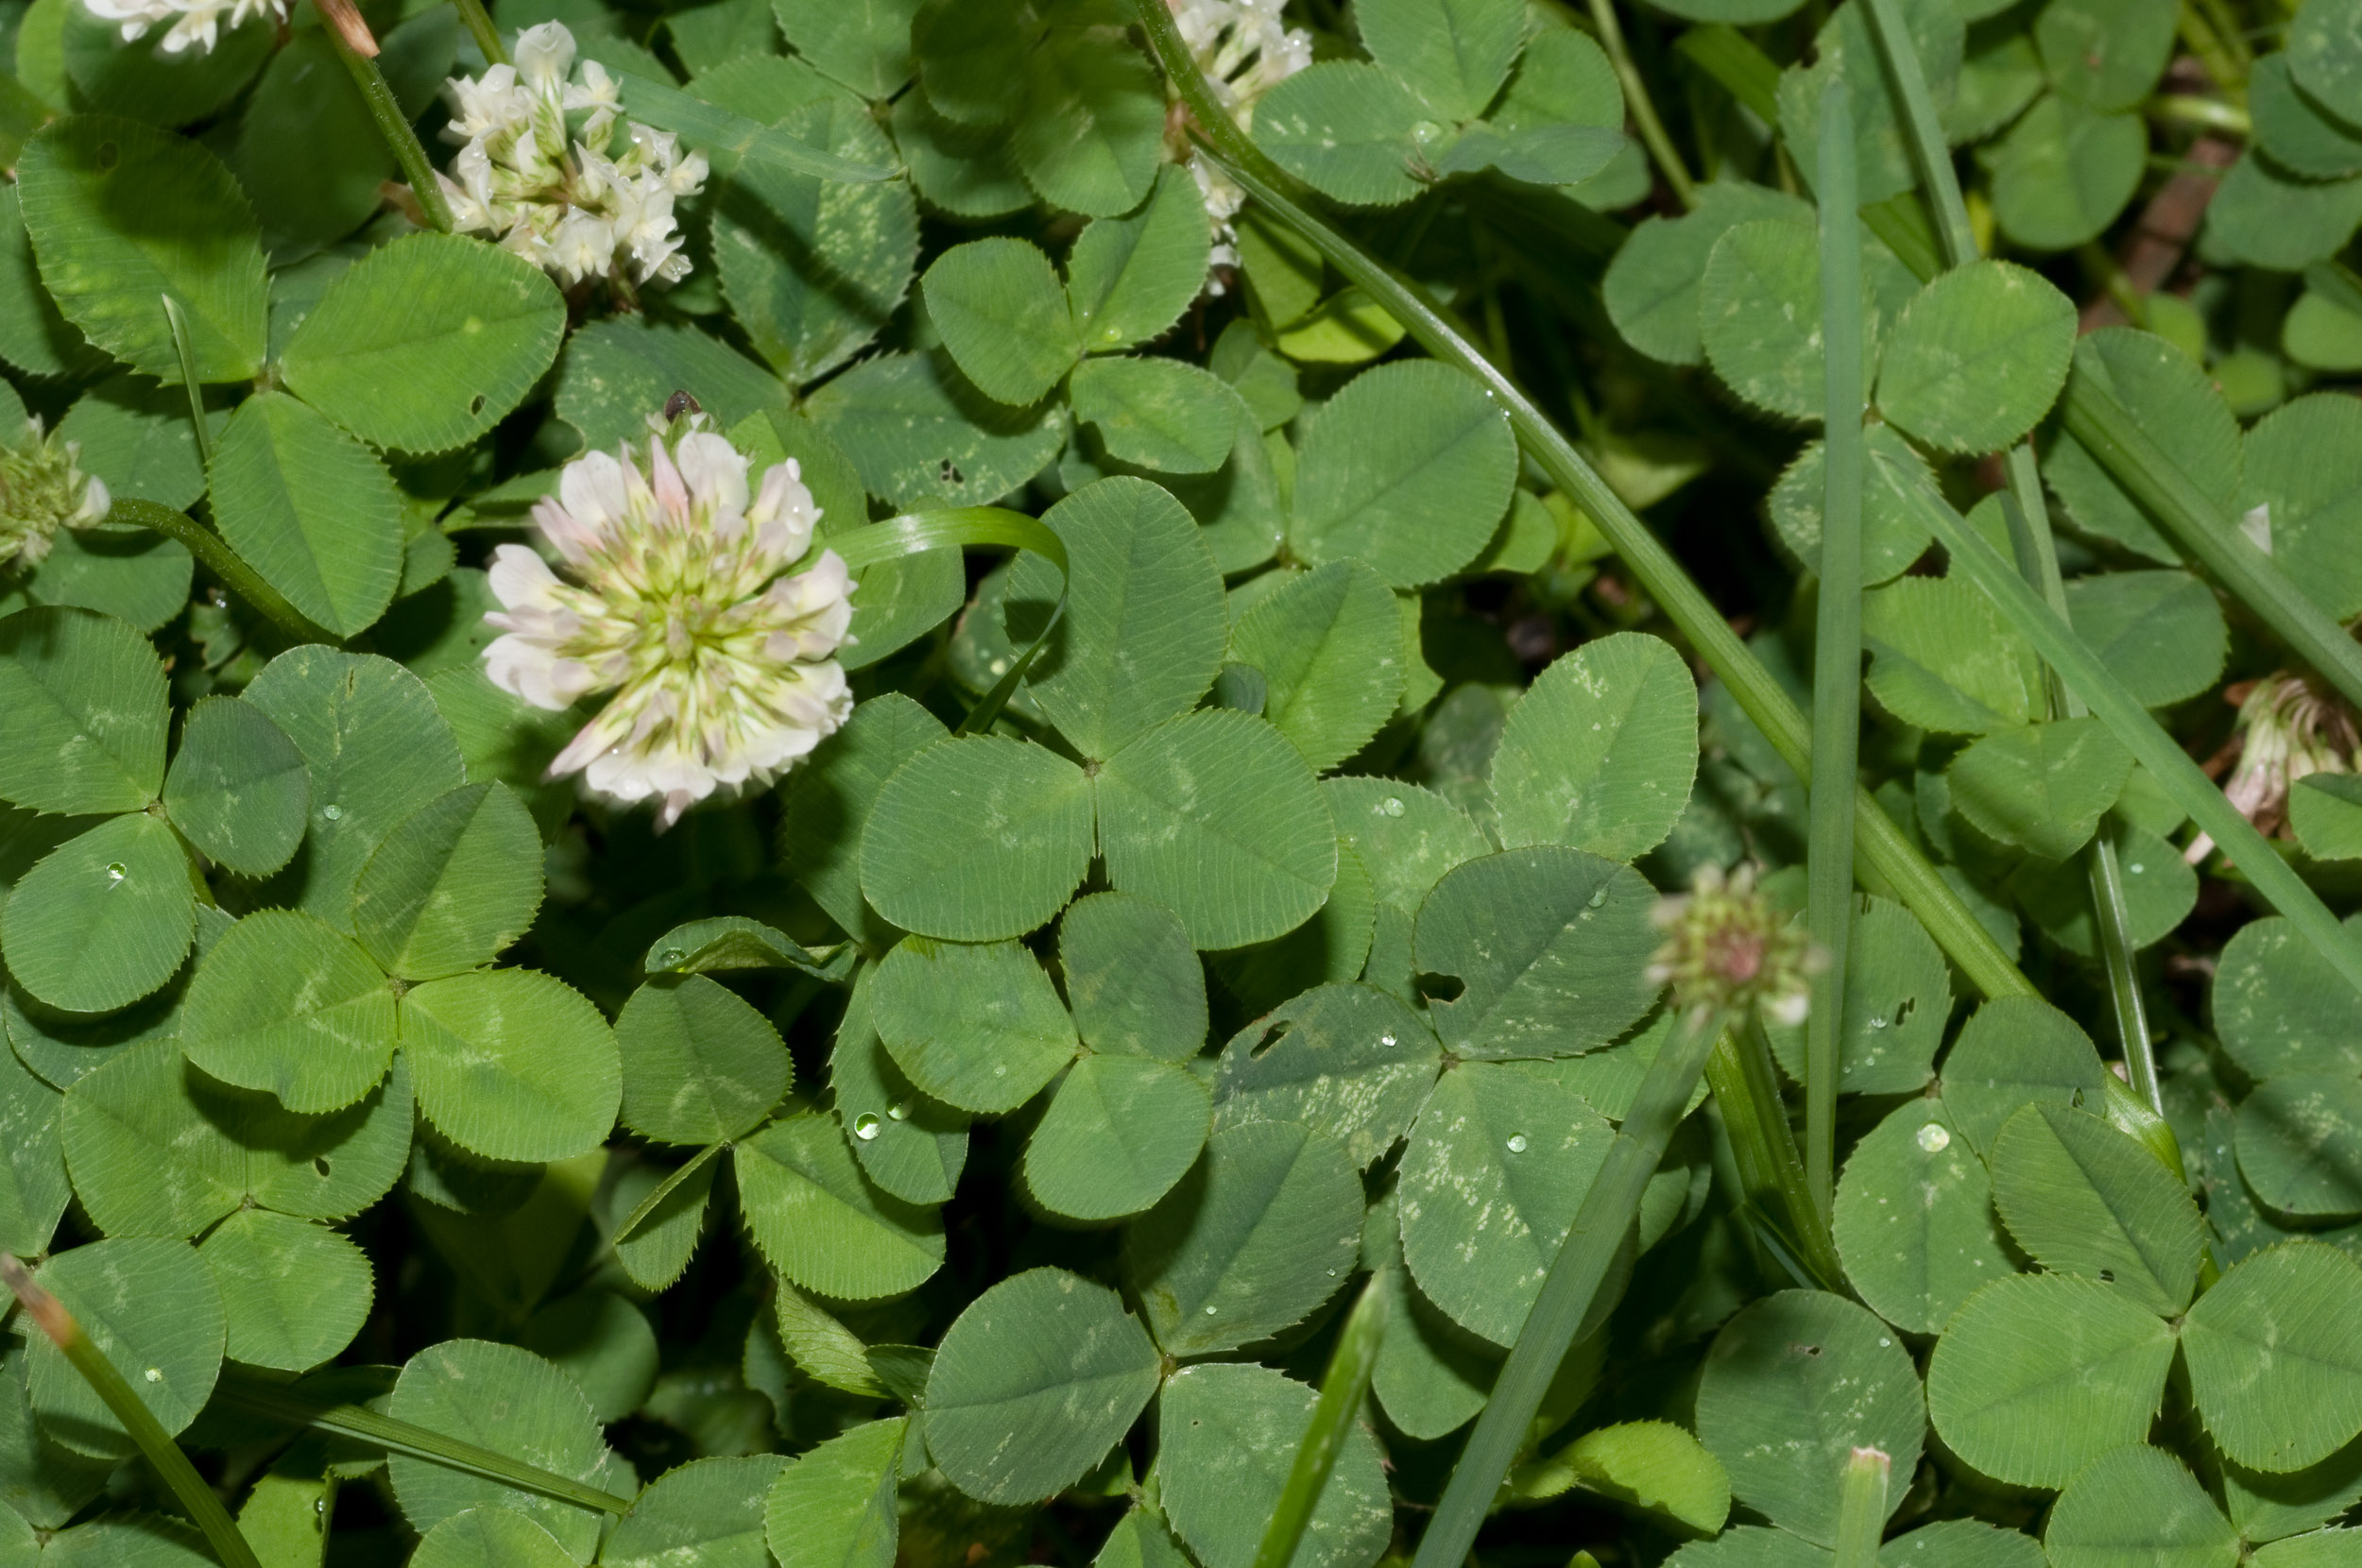 White Clover Facts and Health Benefits |White Clover Plant